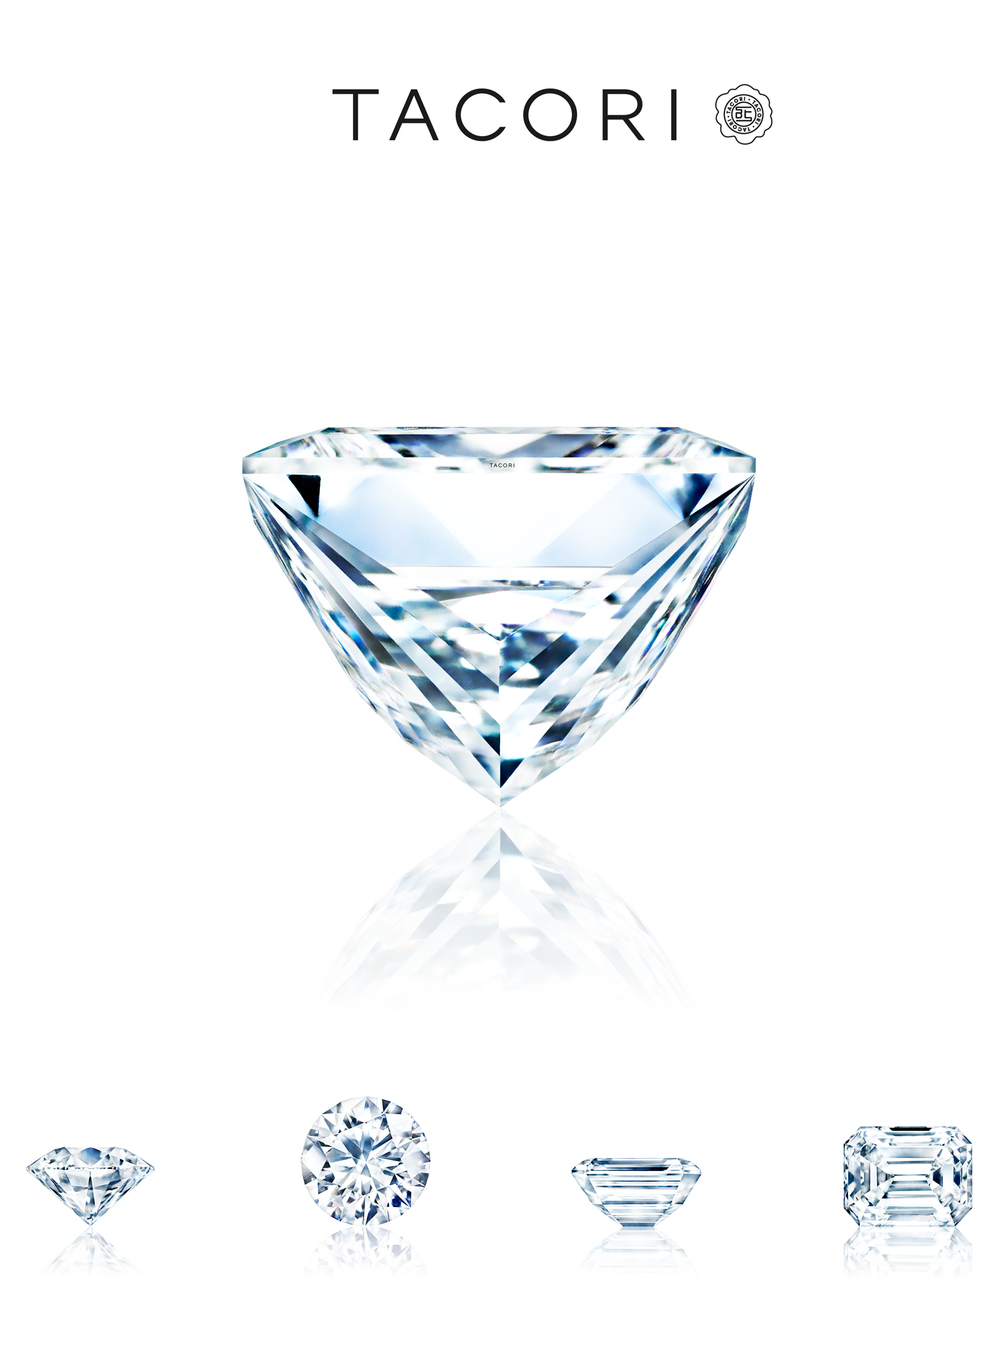 Tacori Diamonds